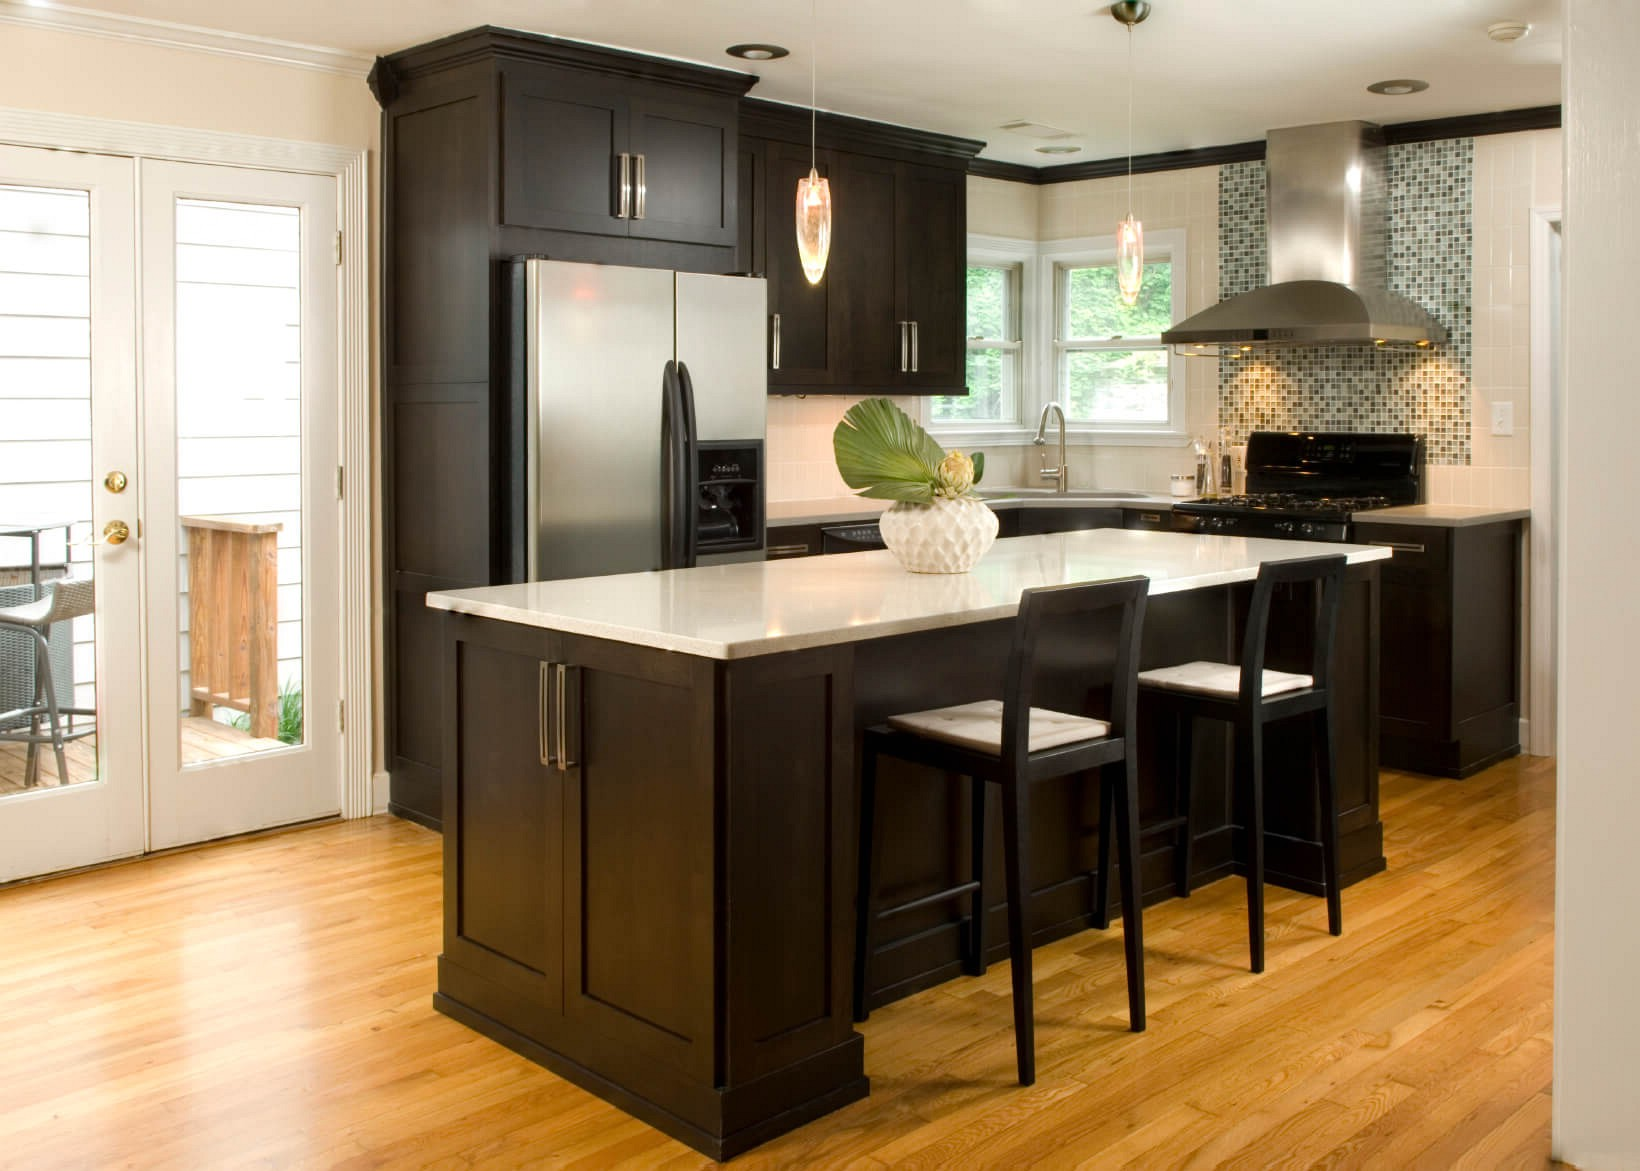 Kitchen design tips for dark kitchen cabinets for Small dark kitchen ideas